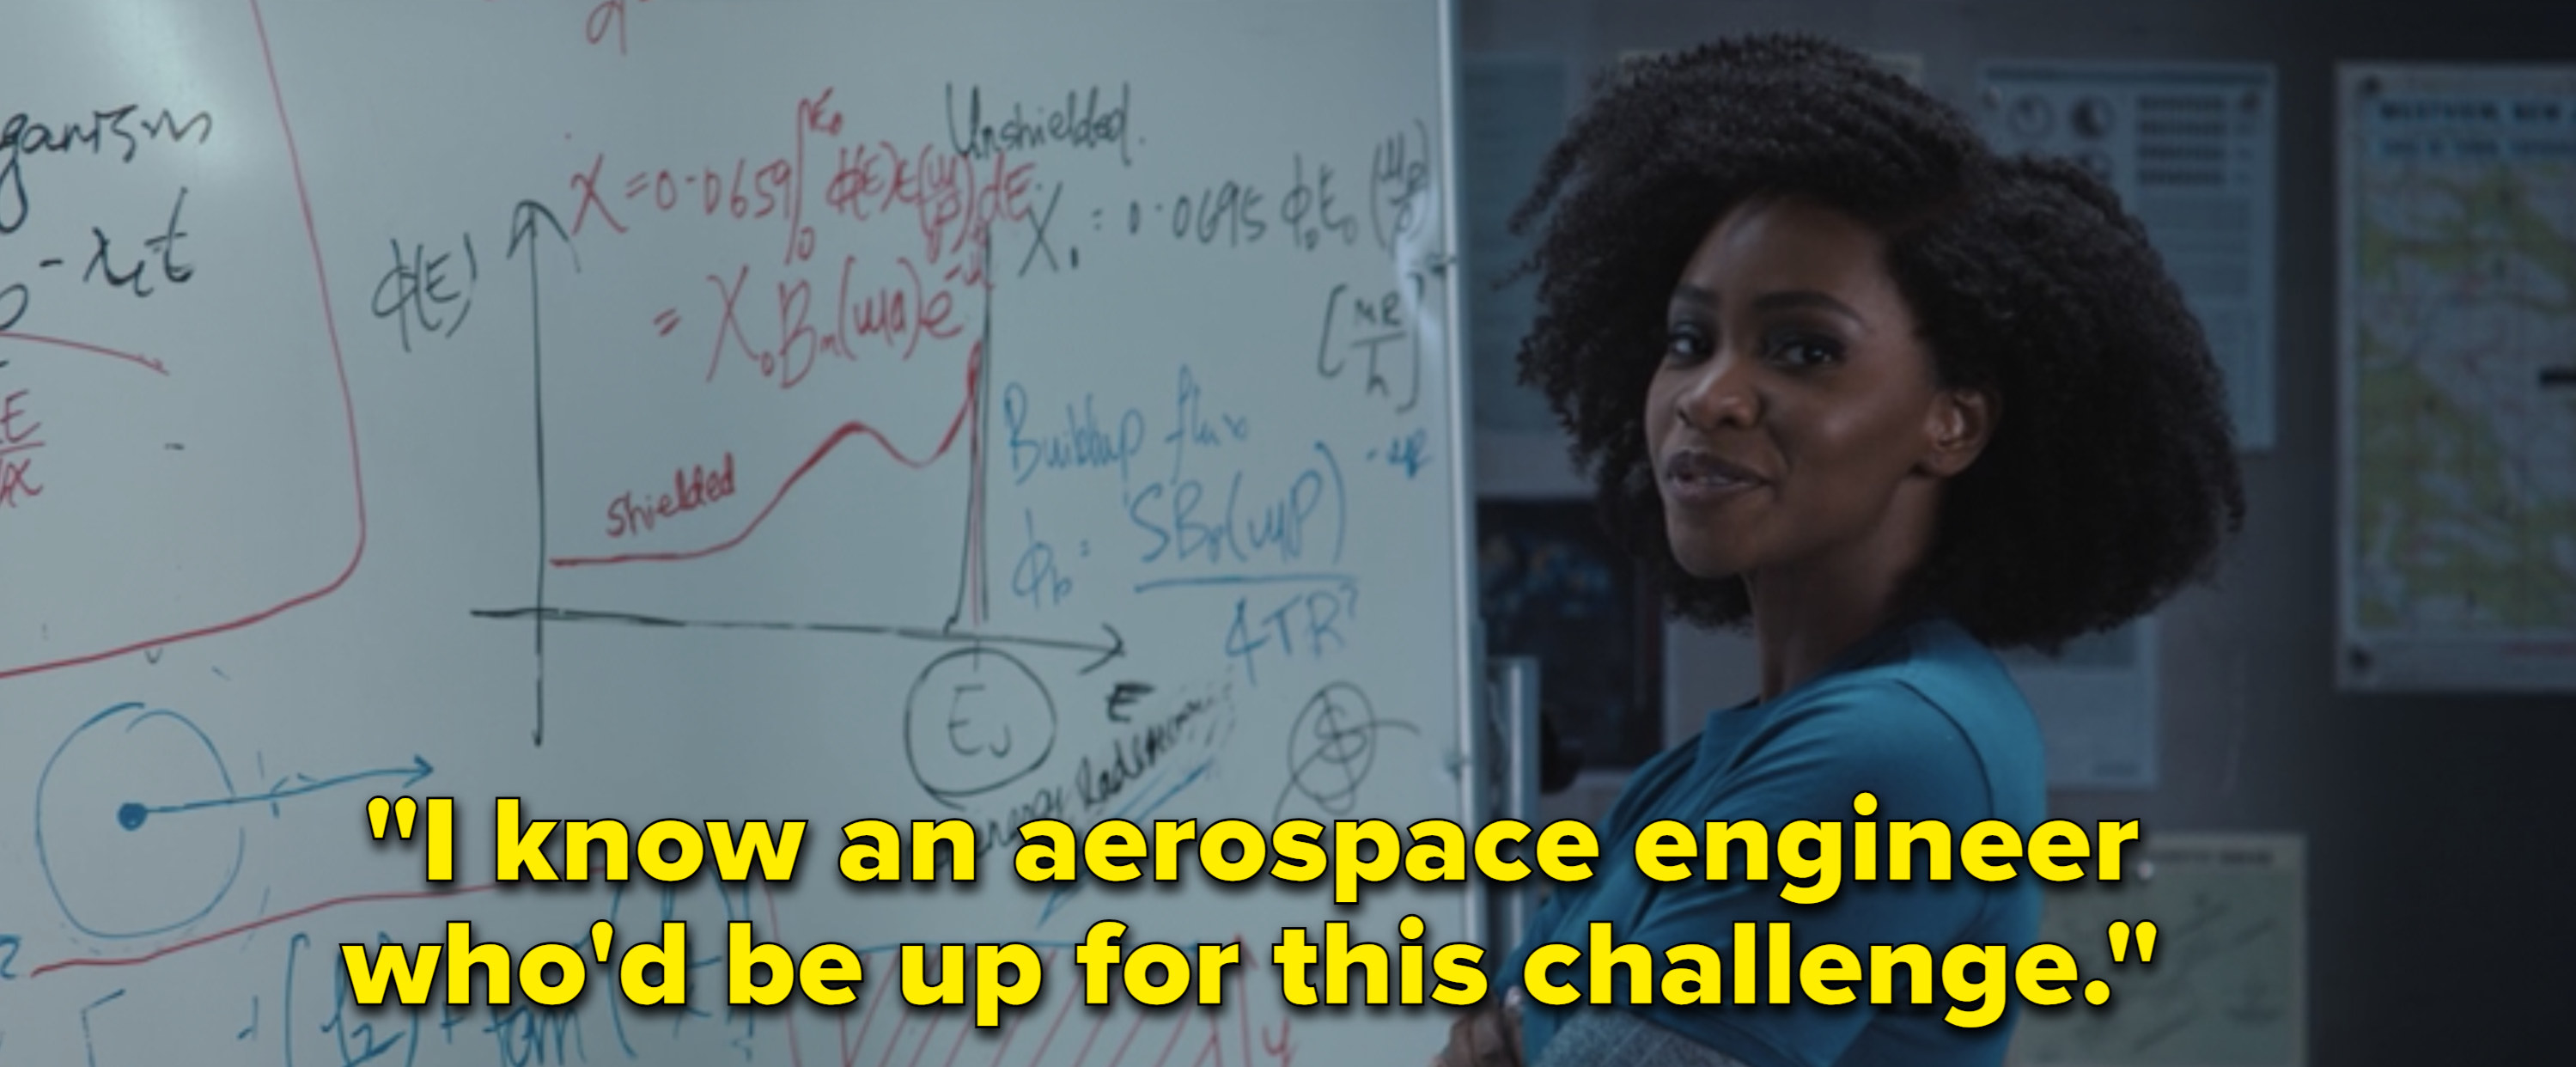 "Monica saying, ""I know an aerospace engineer who'd be up for this challenge"""